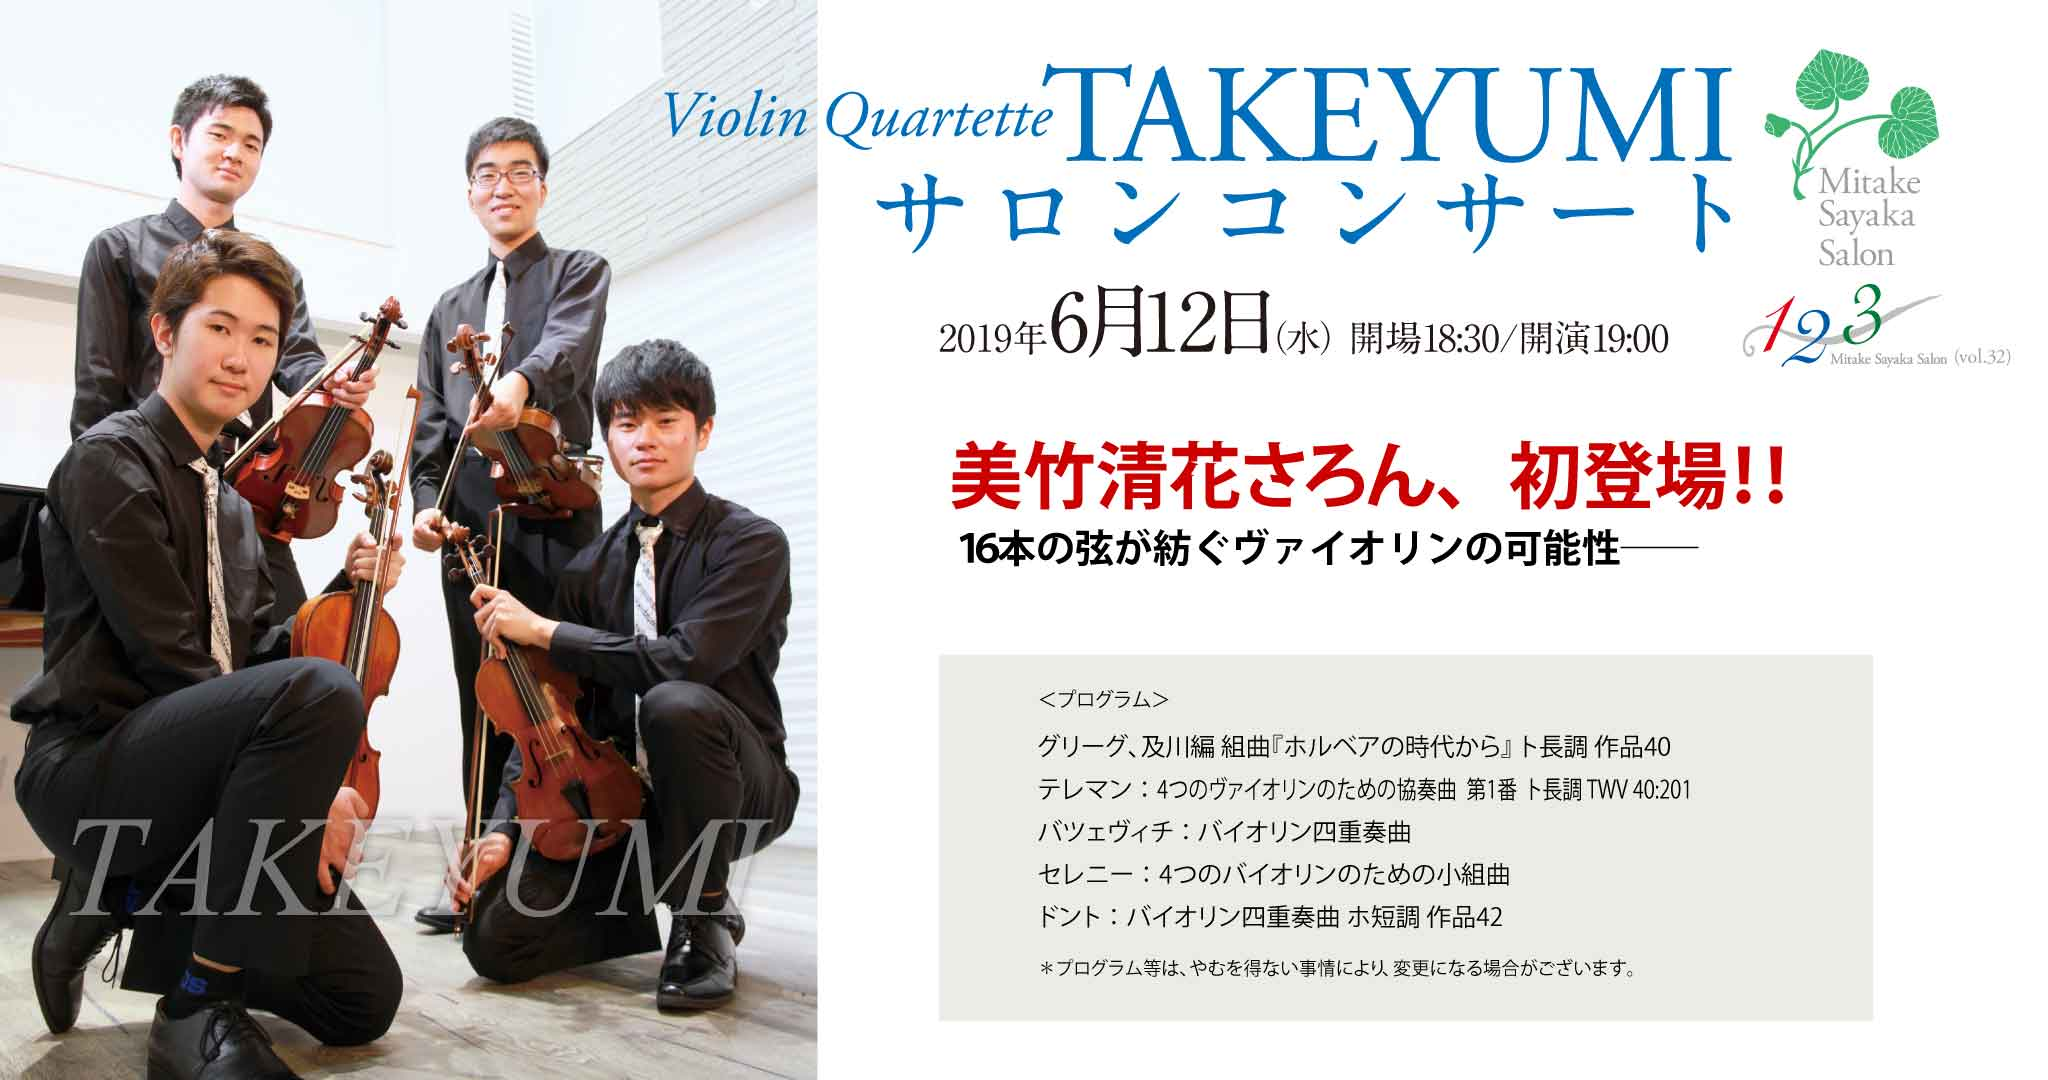 Violin Quartette TAKEYUMIサロンコンサート